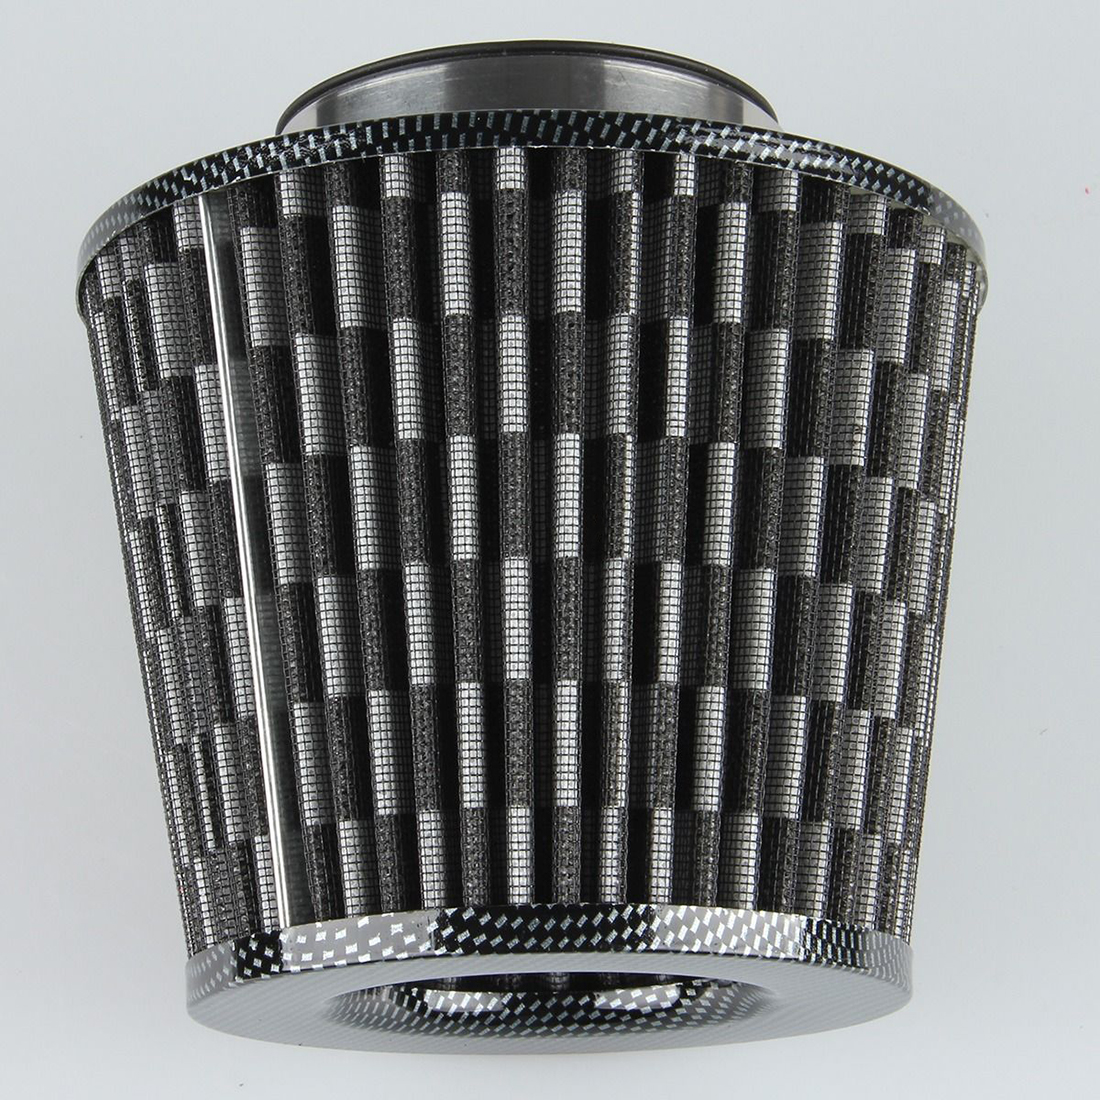 "Unique Bargains Vehicle Car Black White 76mm 3"" Inlet Dia Air Intake Round Filter - image 4 of 7"